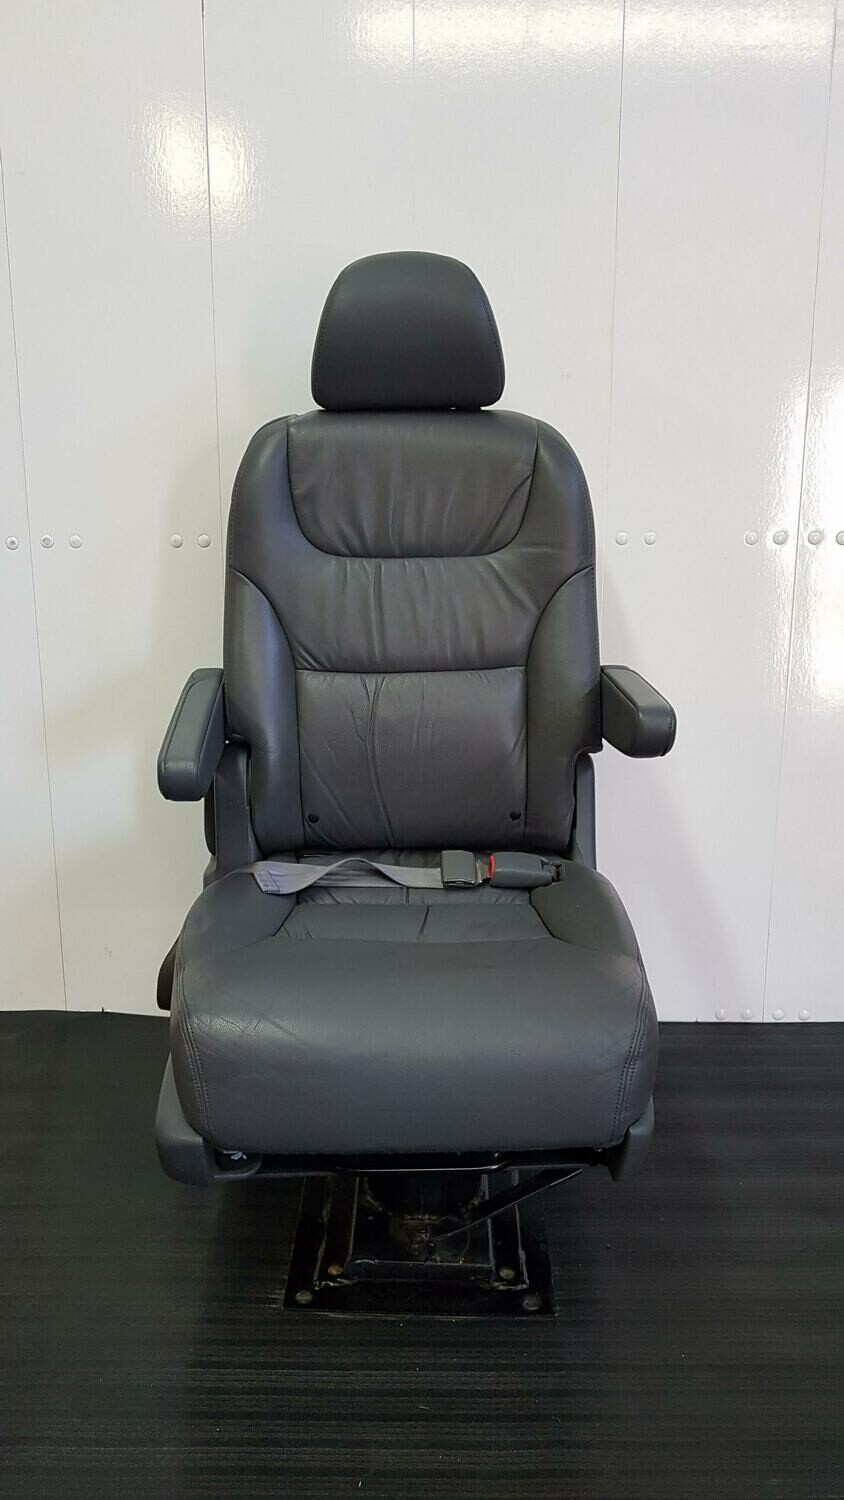 Removable Seat for RVs